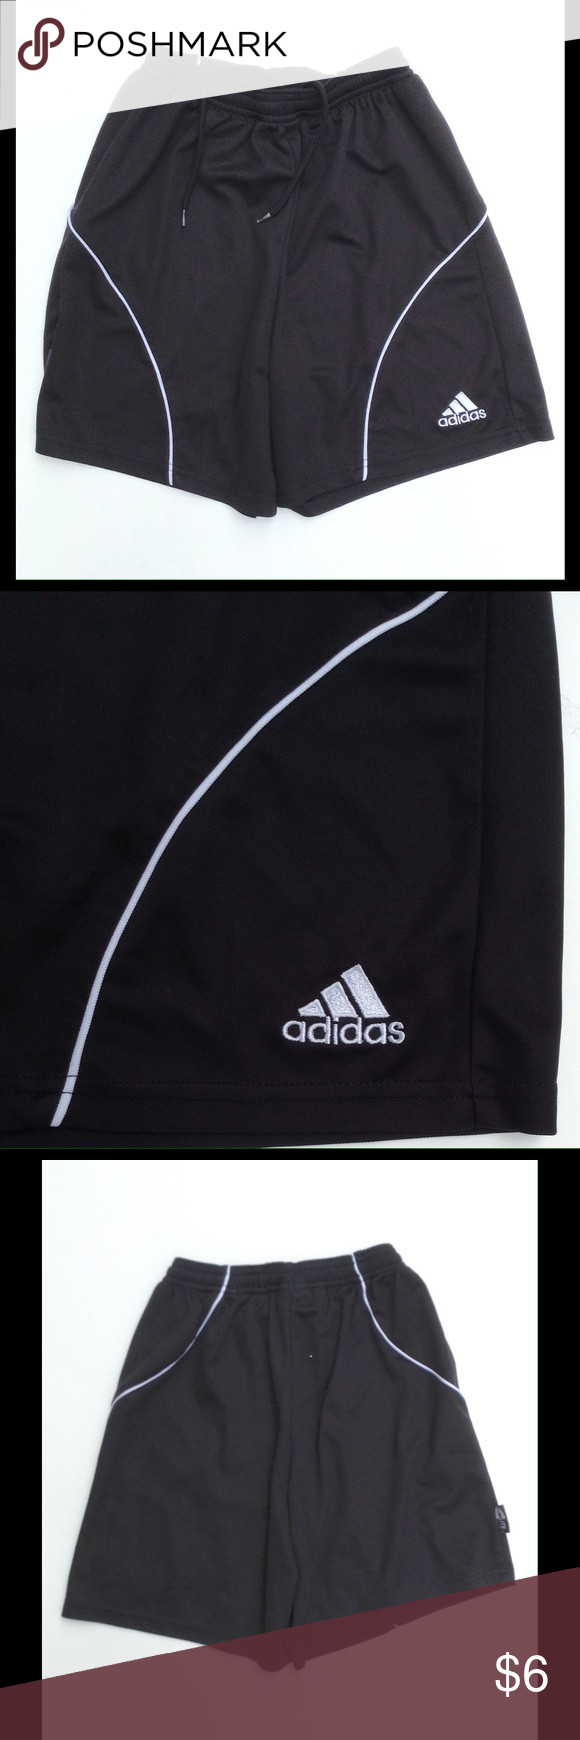 Adidas Boy Shorts Adidas Clima 365 Shorts. Great condition!  Light, cool material.  Great for soccer, basketball or just everyday. Adidas Bottoms Shorts